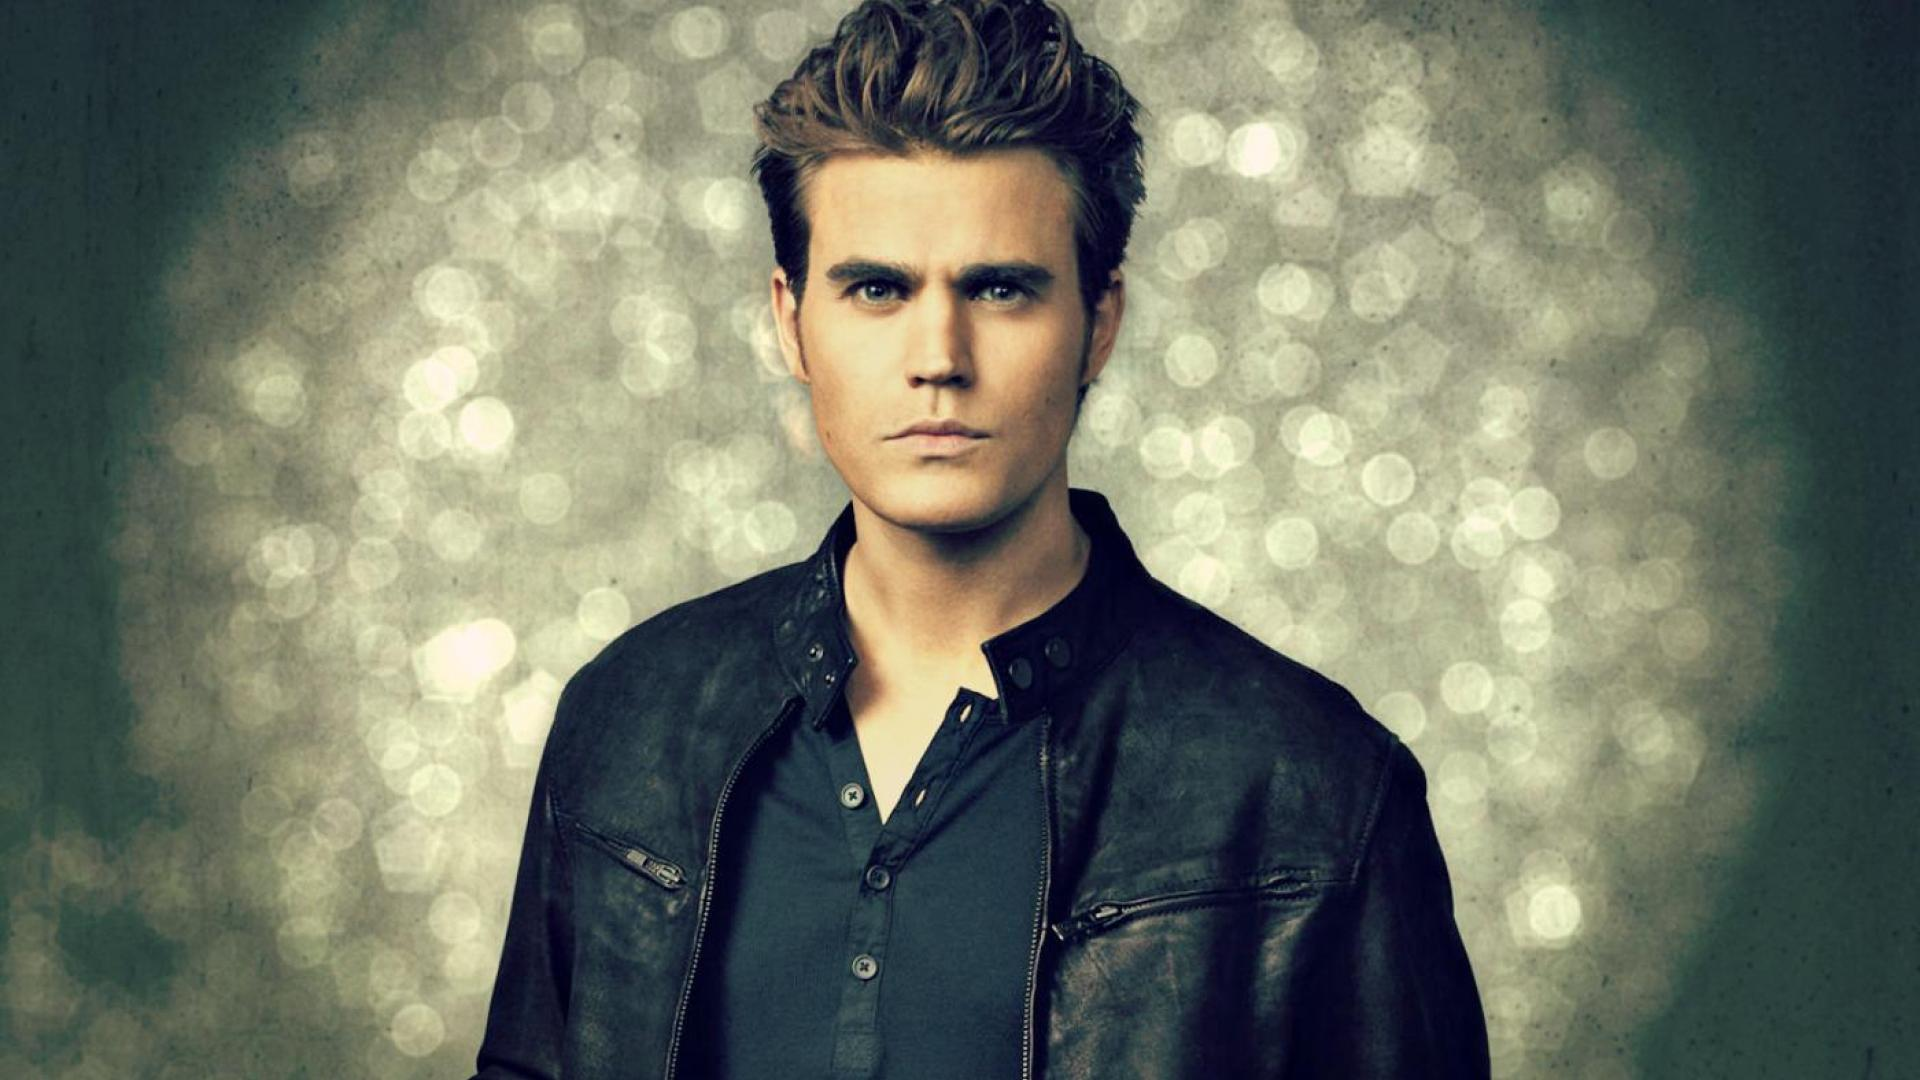 Paul Wesley Desktop Background   Wallpaper High Definition High 1920x1080